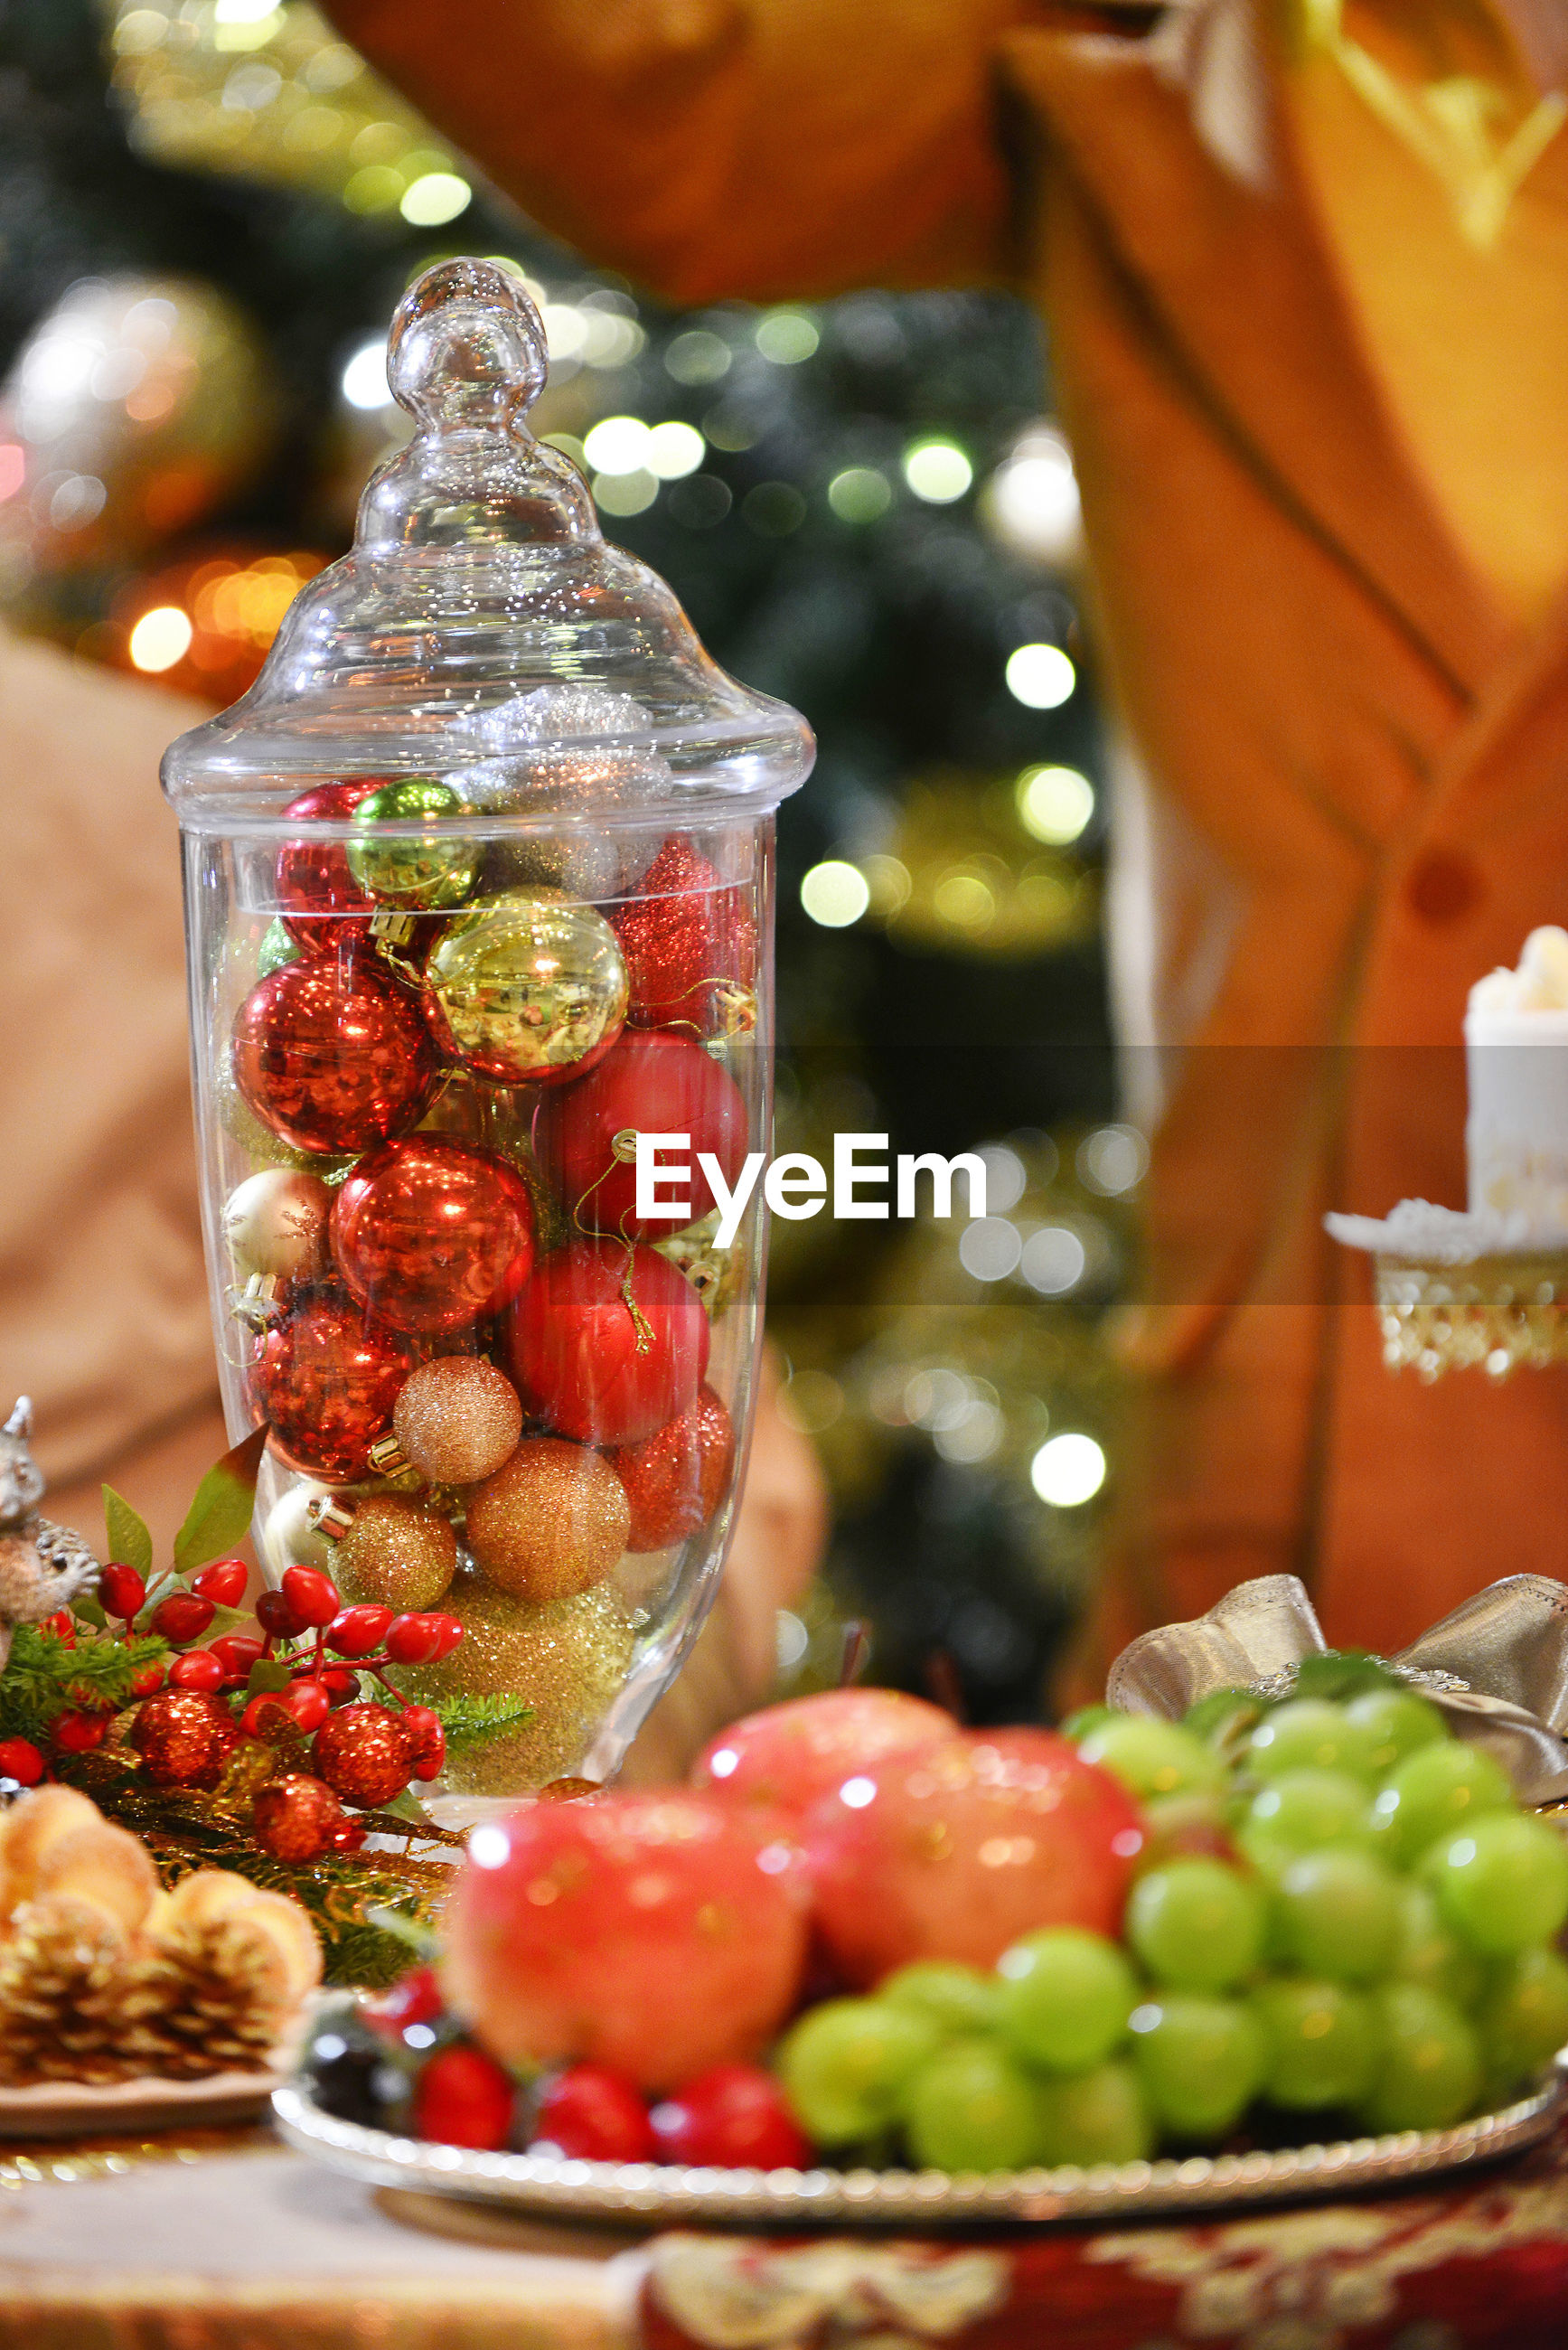 Close-up of fruits on table at christmas party